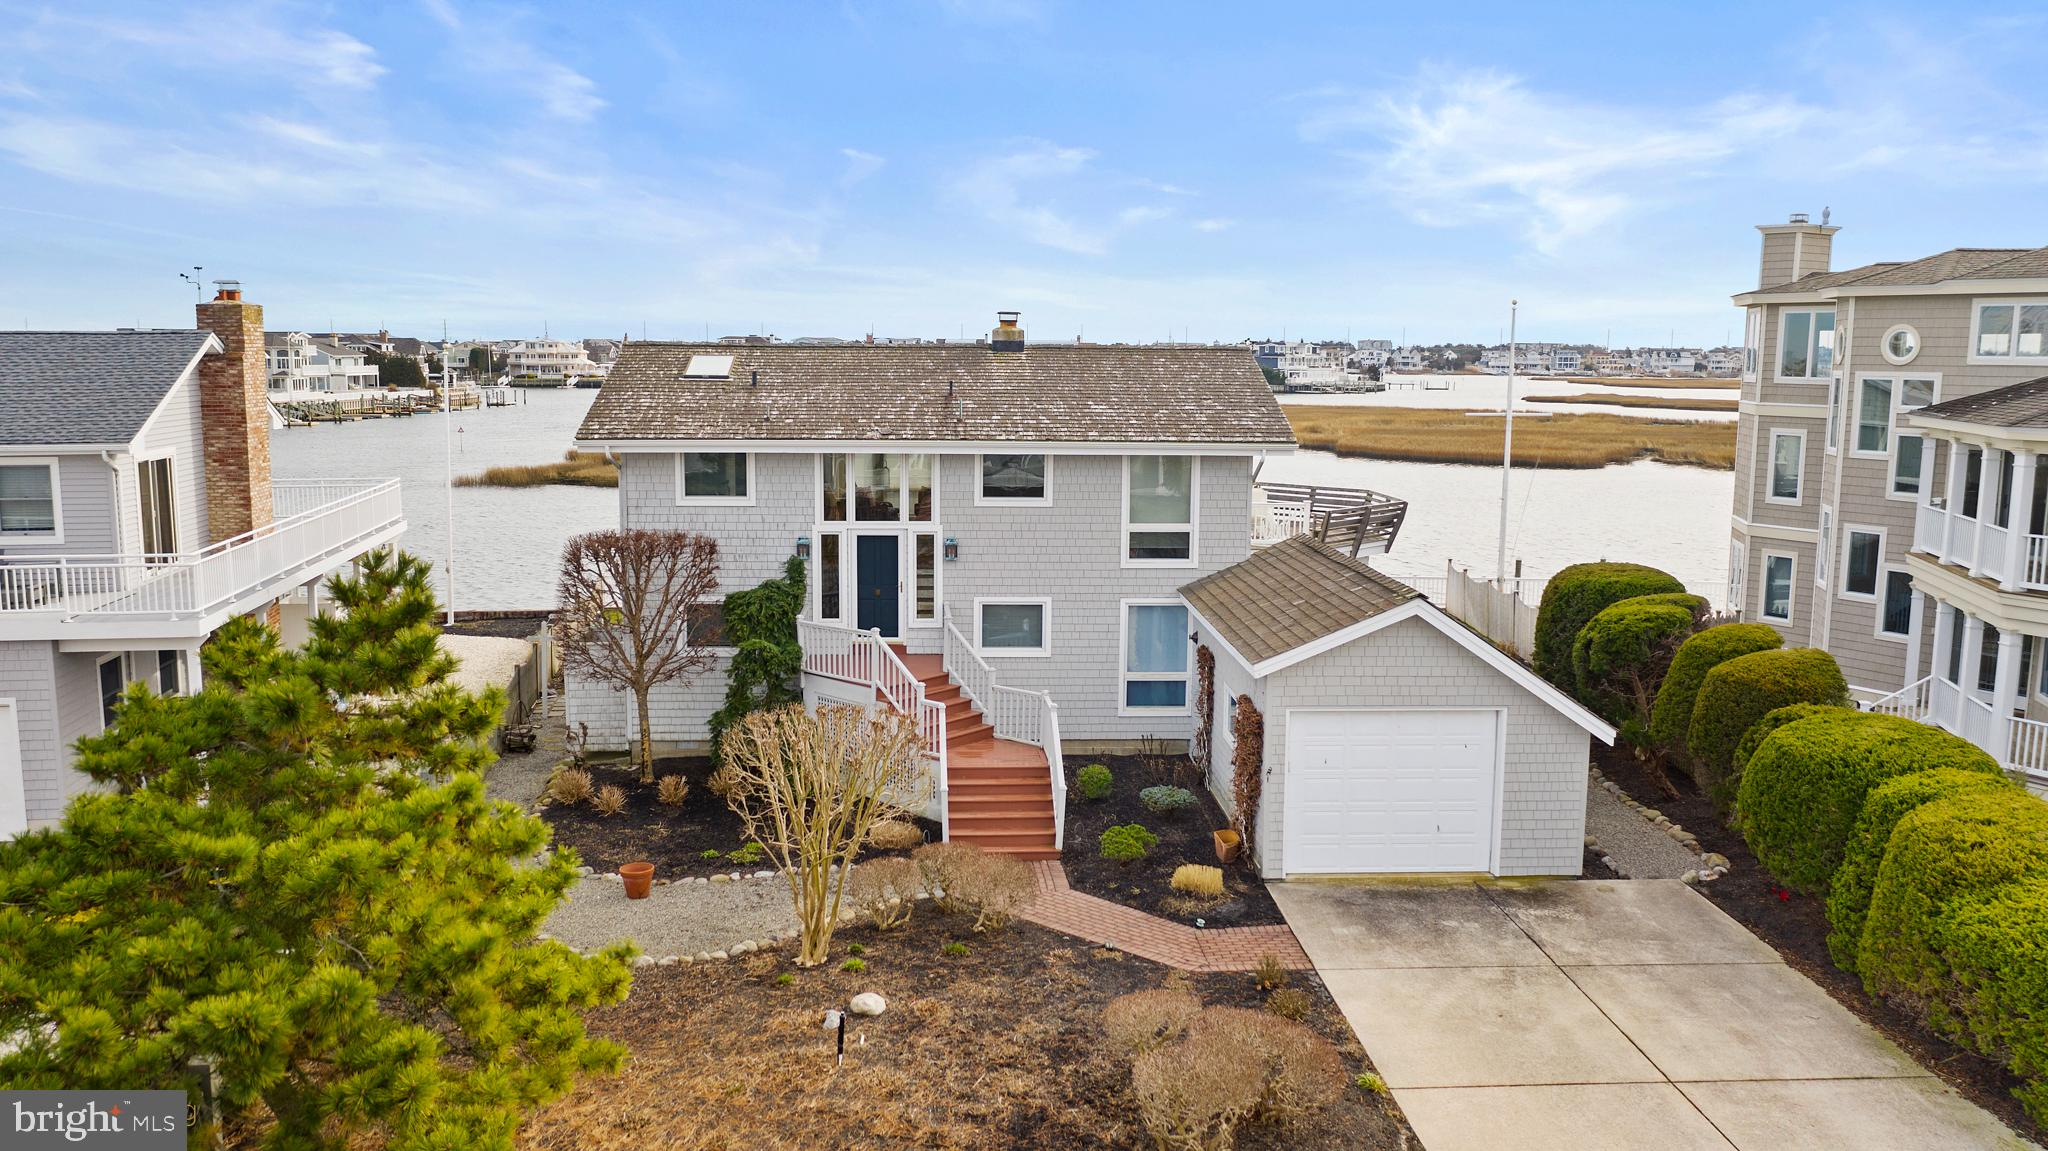 31 HERON DRIVE, AVALON, NJ 08202